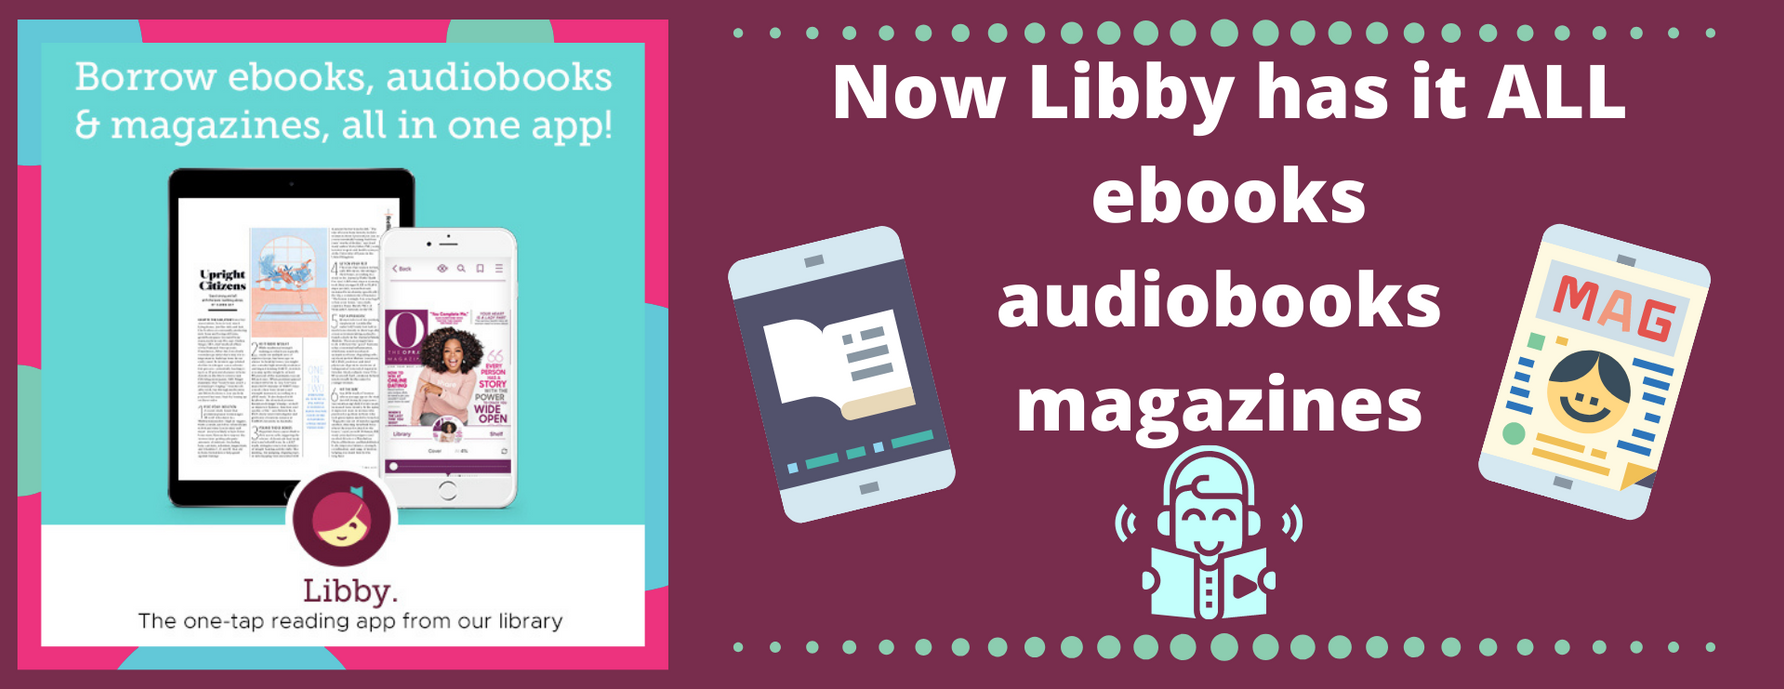 Libby ebooks audiobooks and magazines al